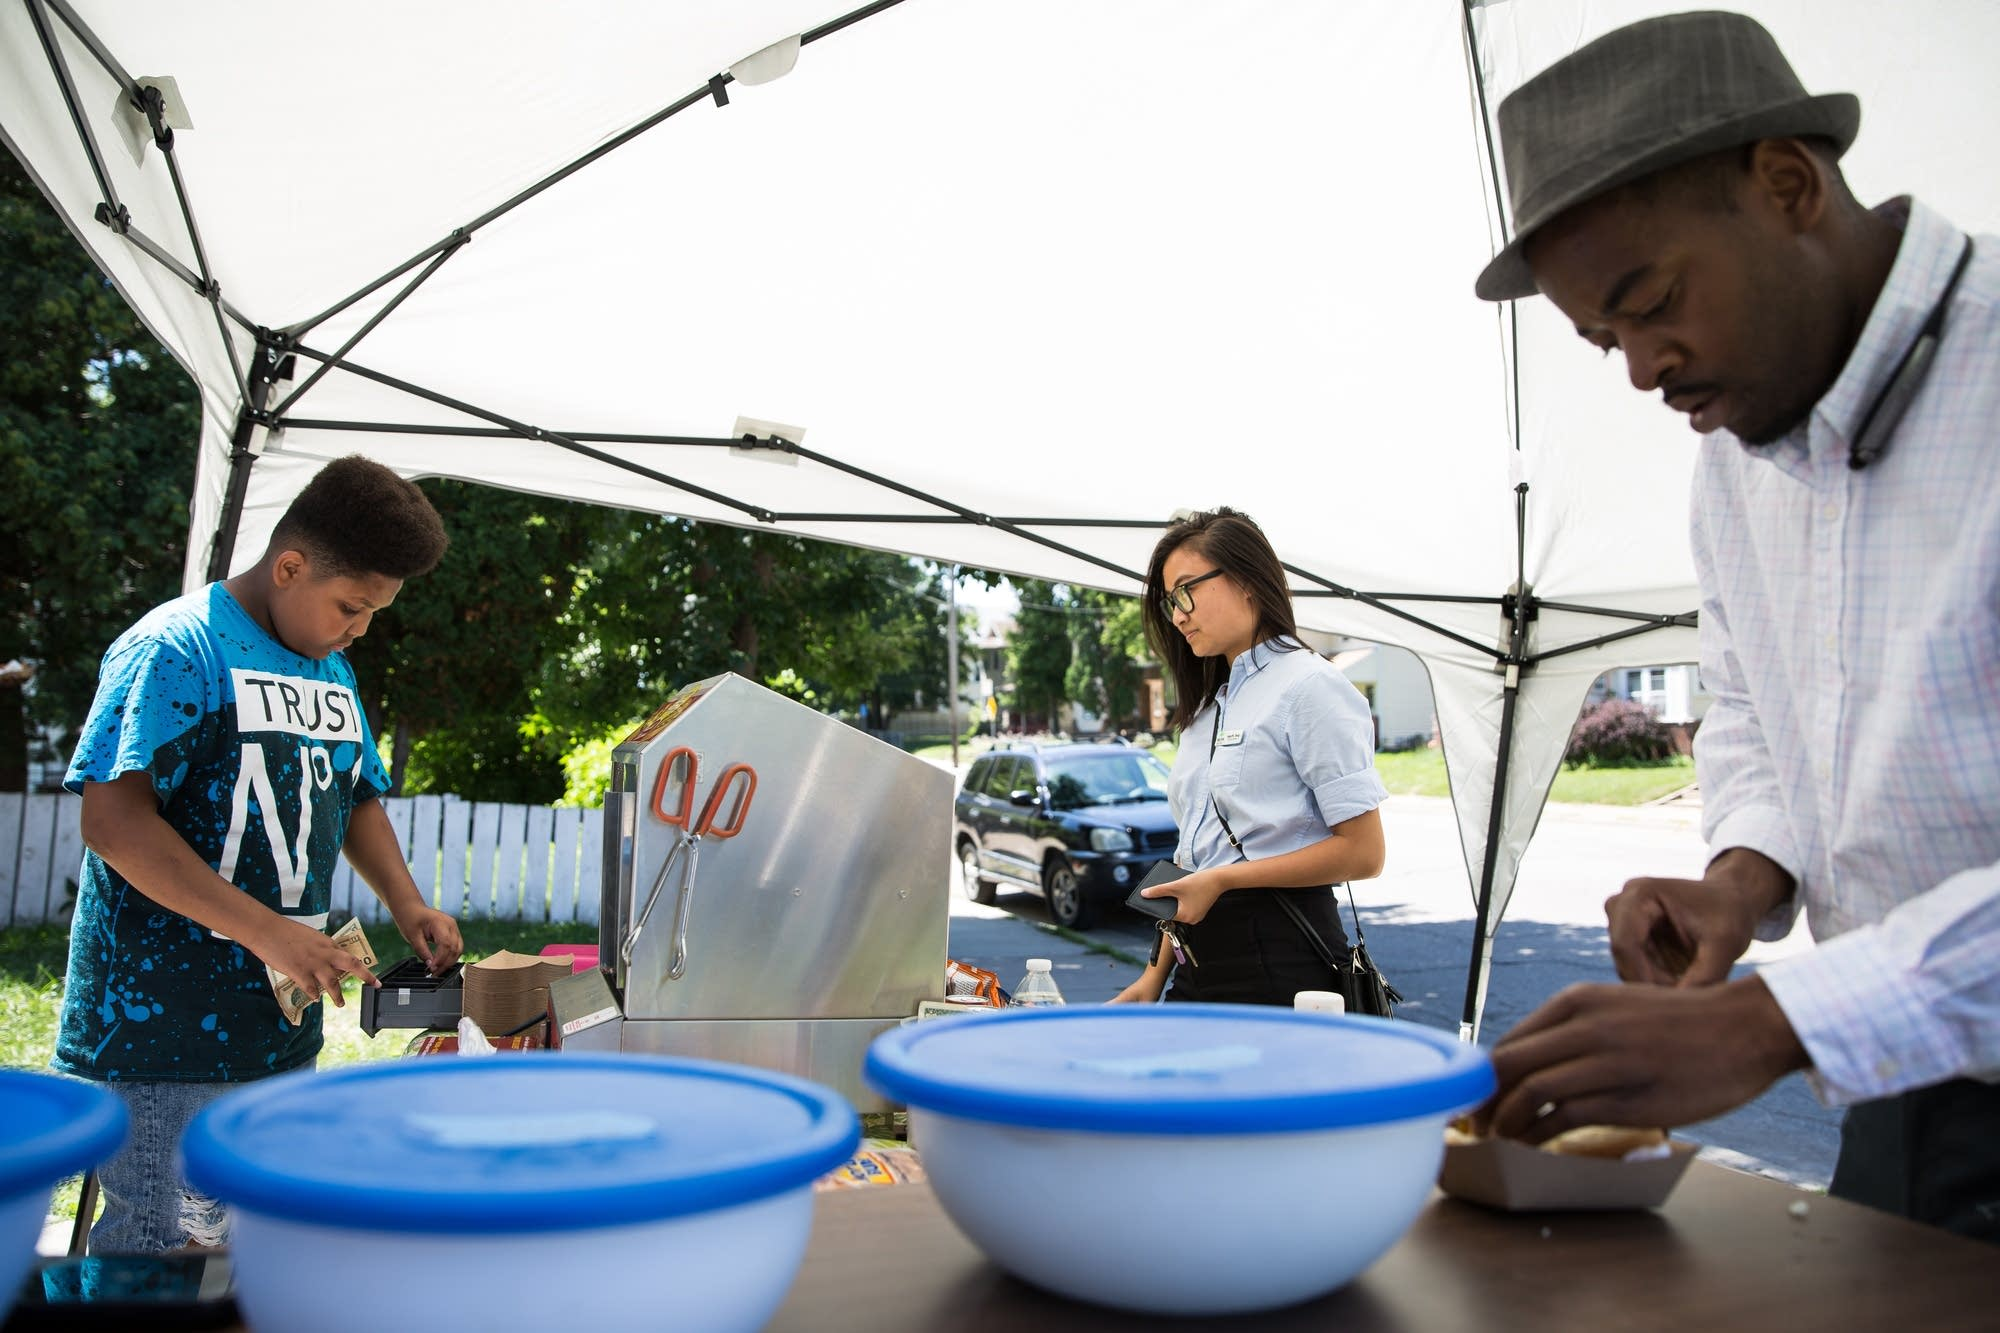 Jaequan Faulkner serves customers from a stand in front of his house.